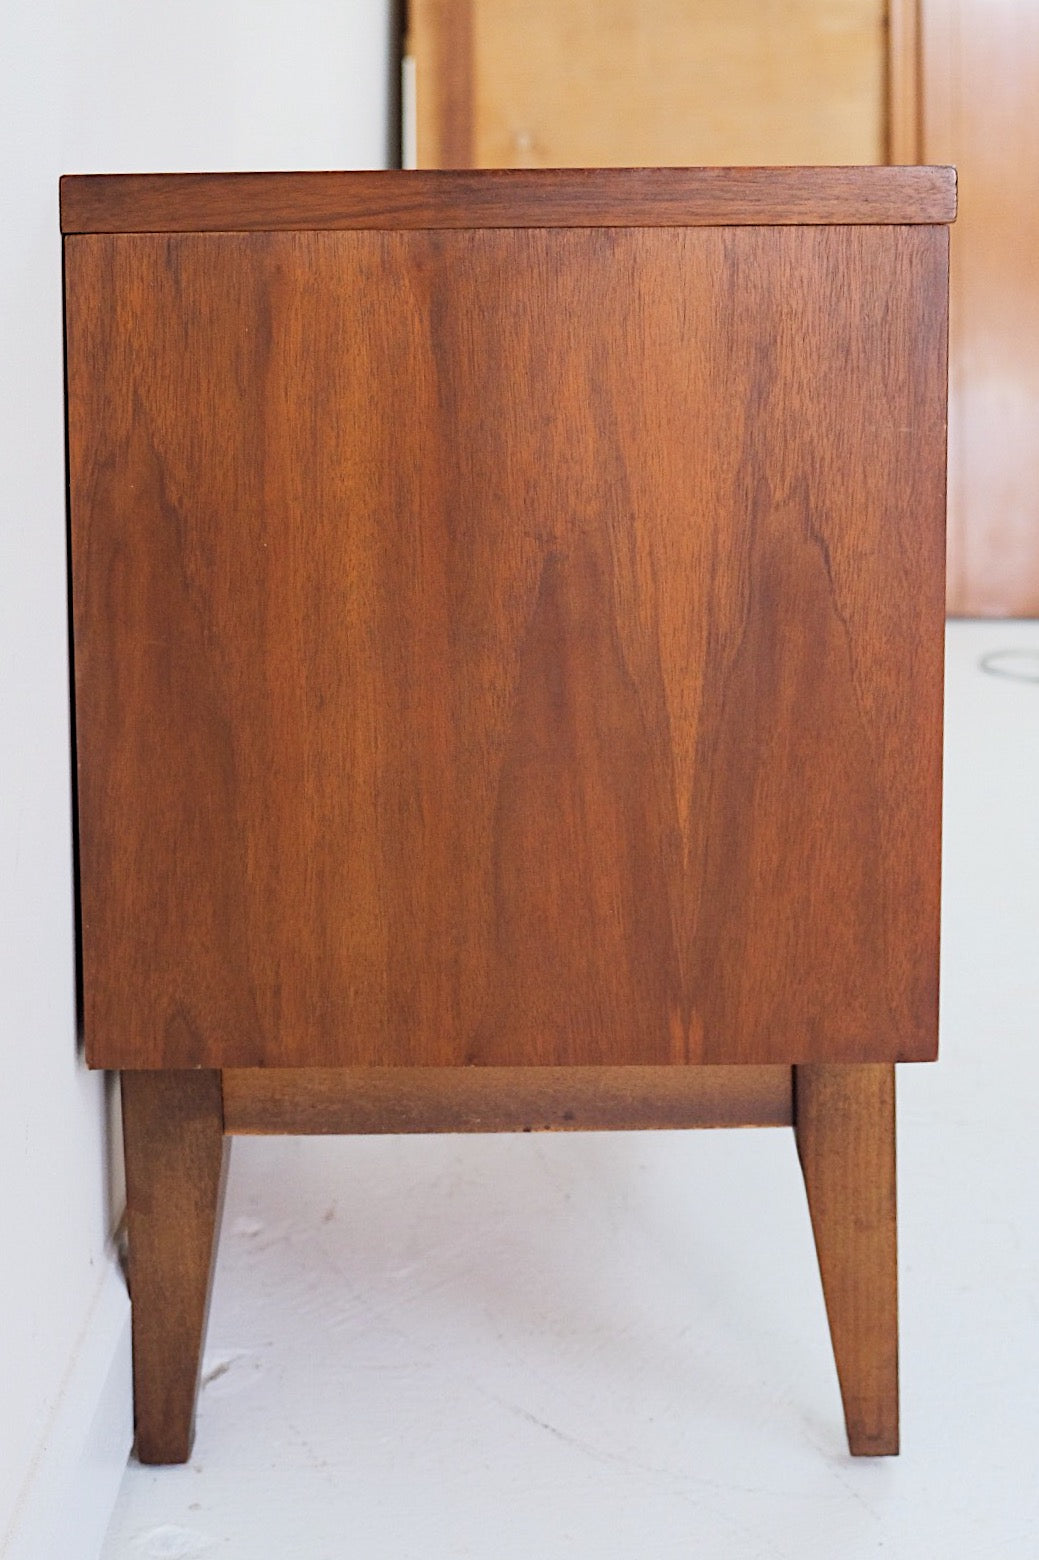 Johnson Carper Mid Century Modern Nightstand End Table Side Table Brass Square Pull Handle